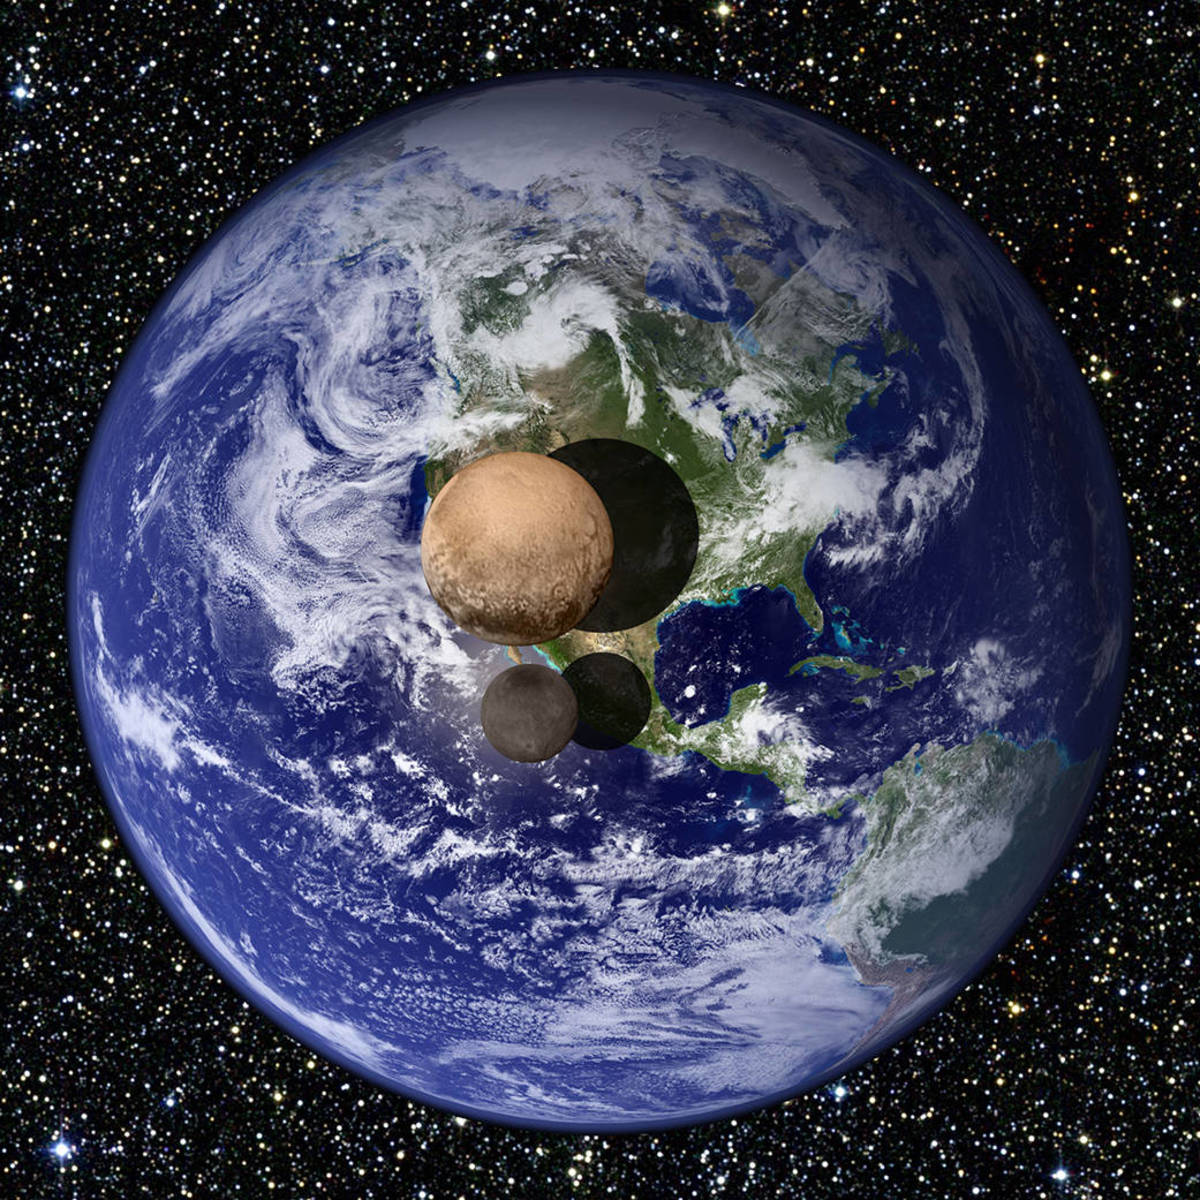 Pluto and Charon compared to Earth. Side by side, they'd fit inside the United States.